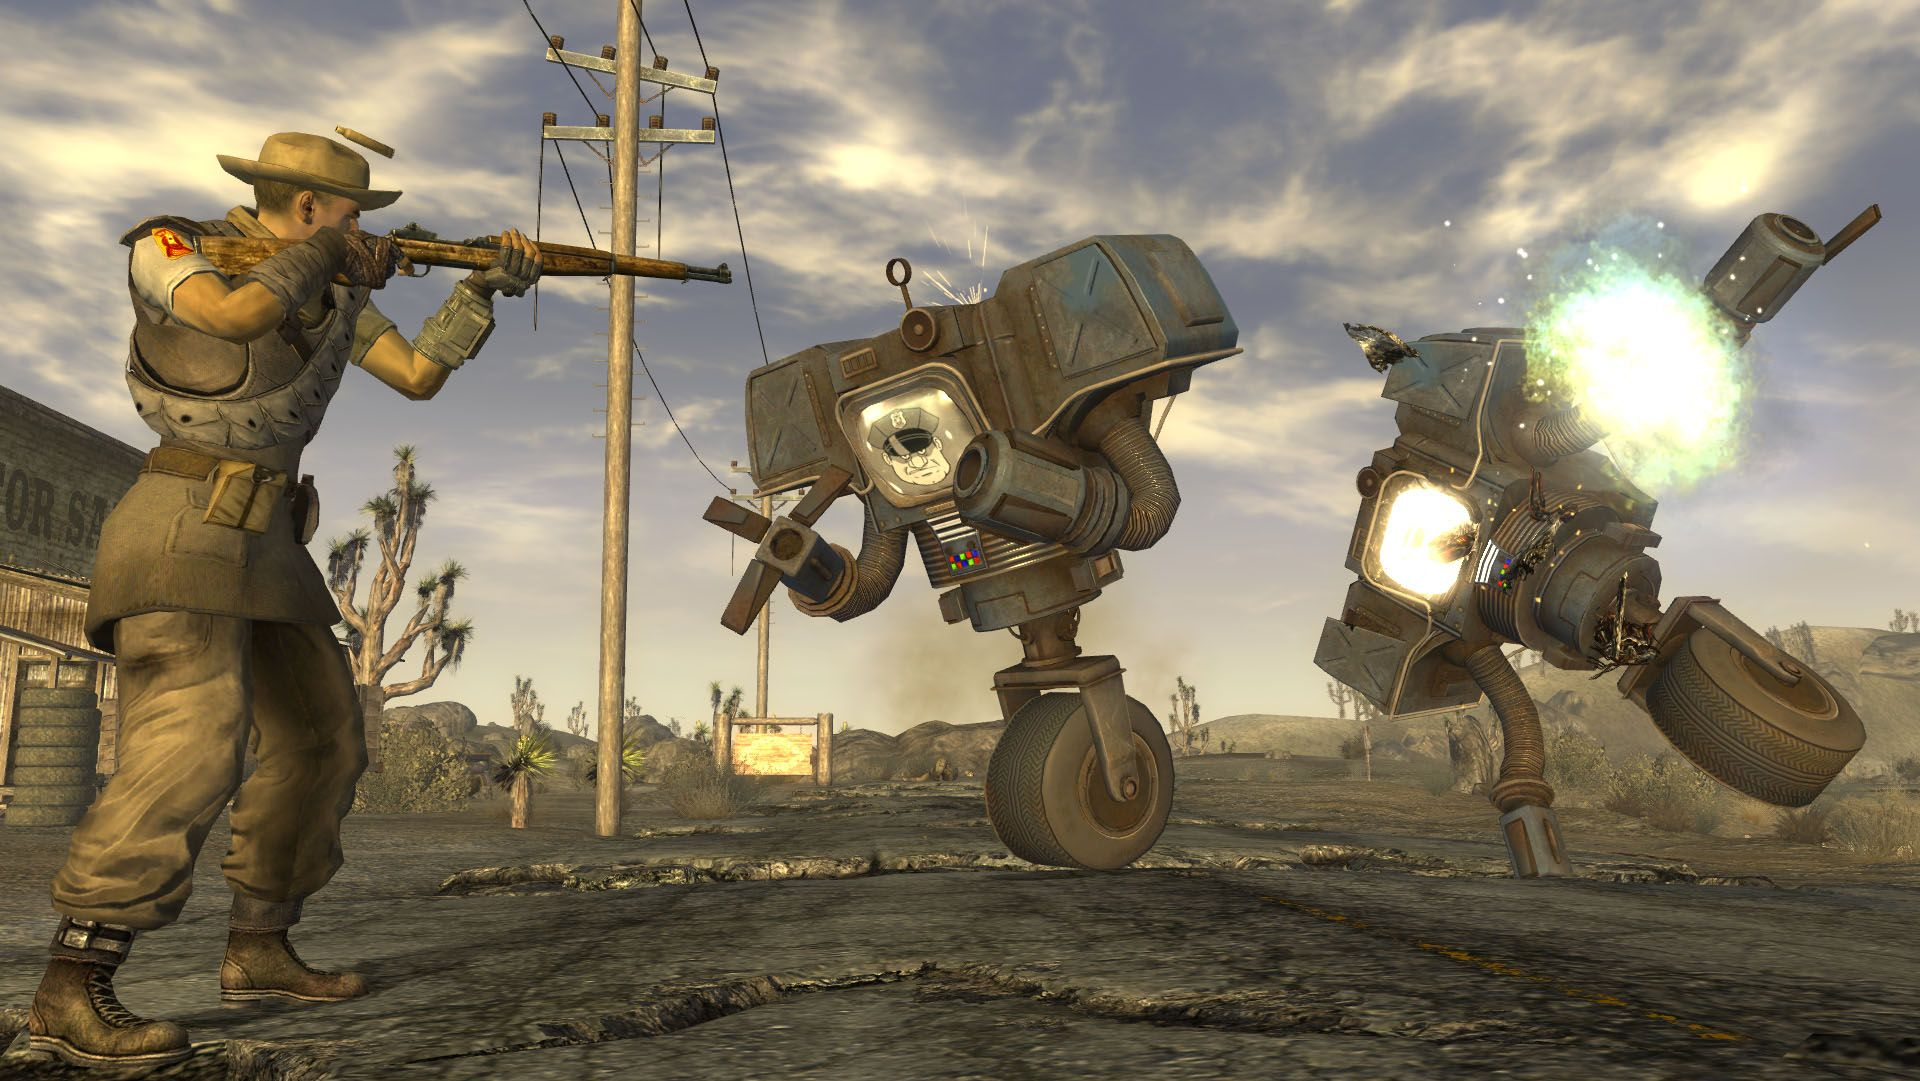 The player character in Fallout: New Vegas in a gunfight with two wasteland robots